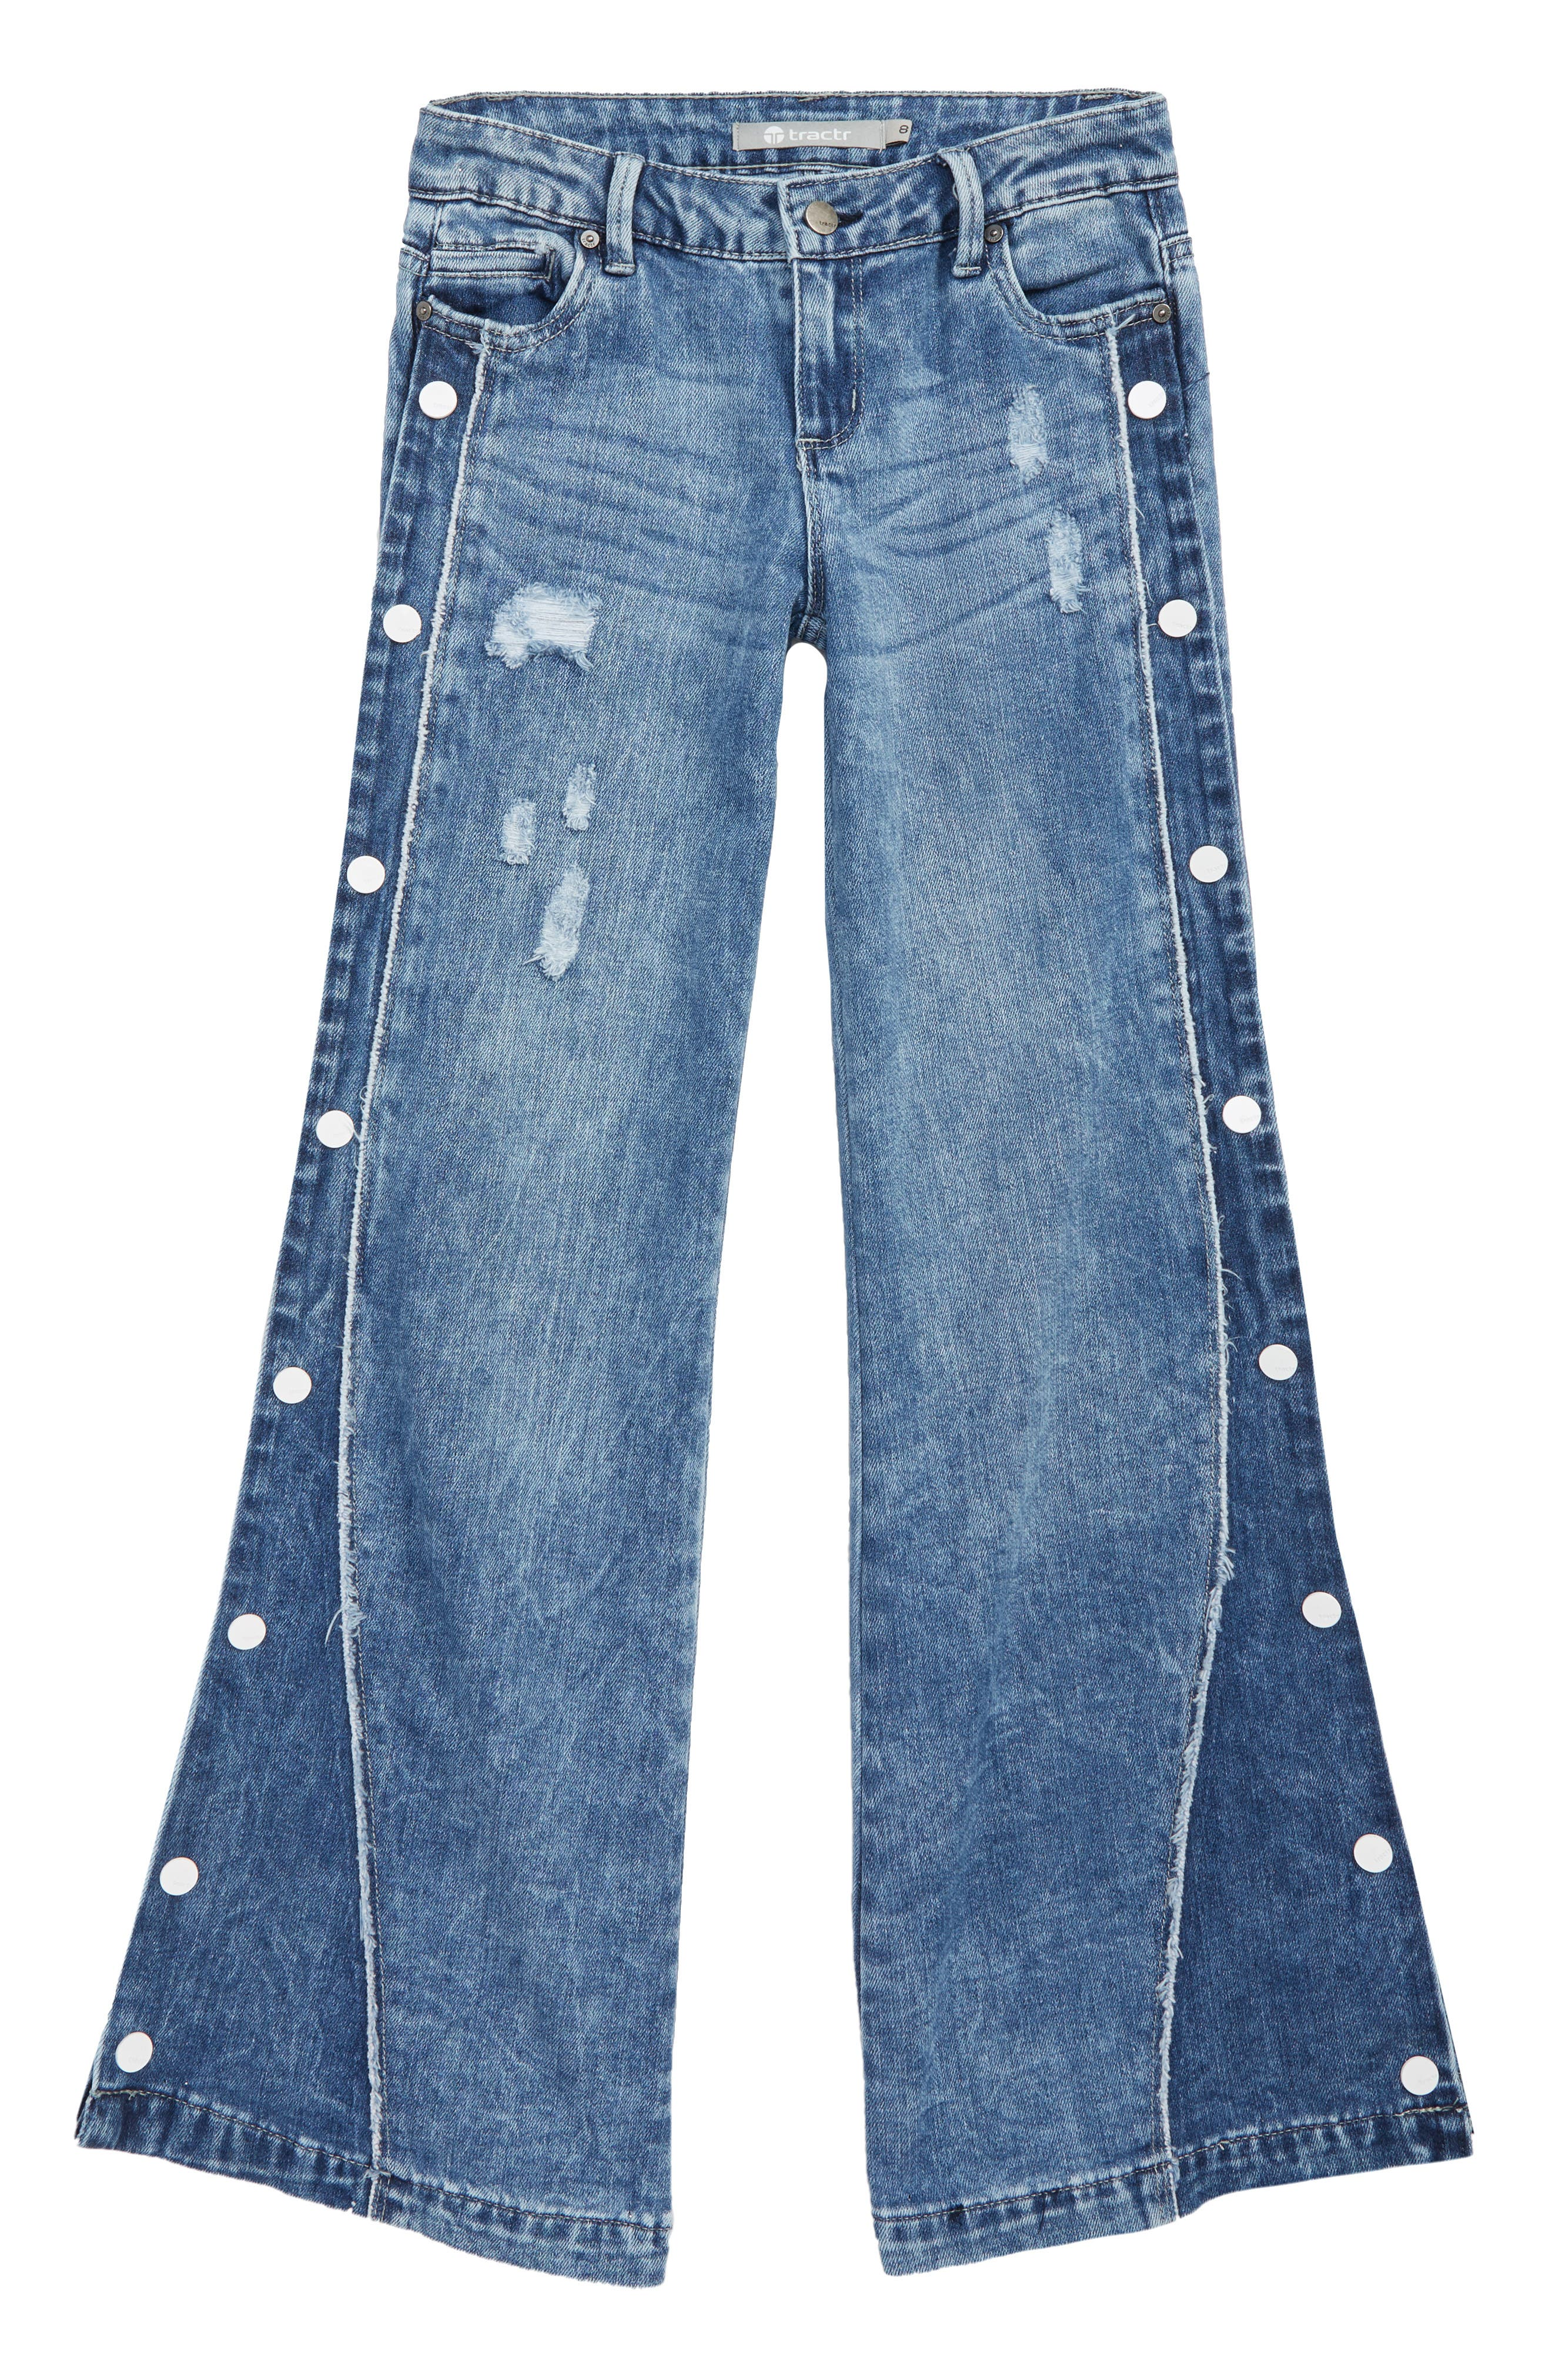 60s 70s Kids Costumes & Clothing Girls & Boys Girls Tractr Snap Side Wide Leg Jeans $32.40 AT vintagedancer.com